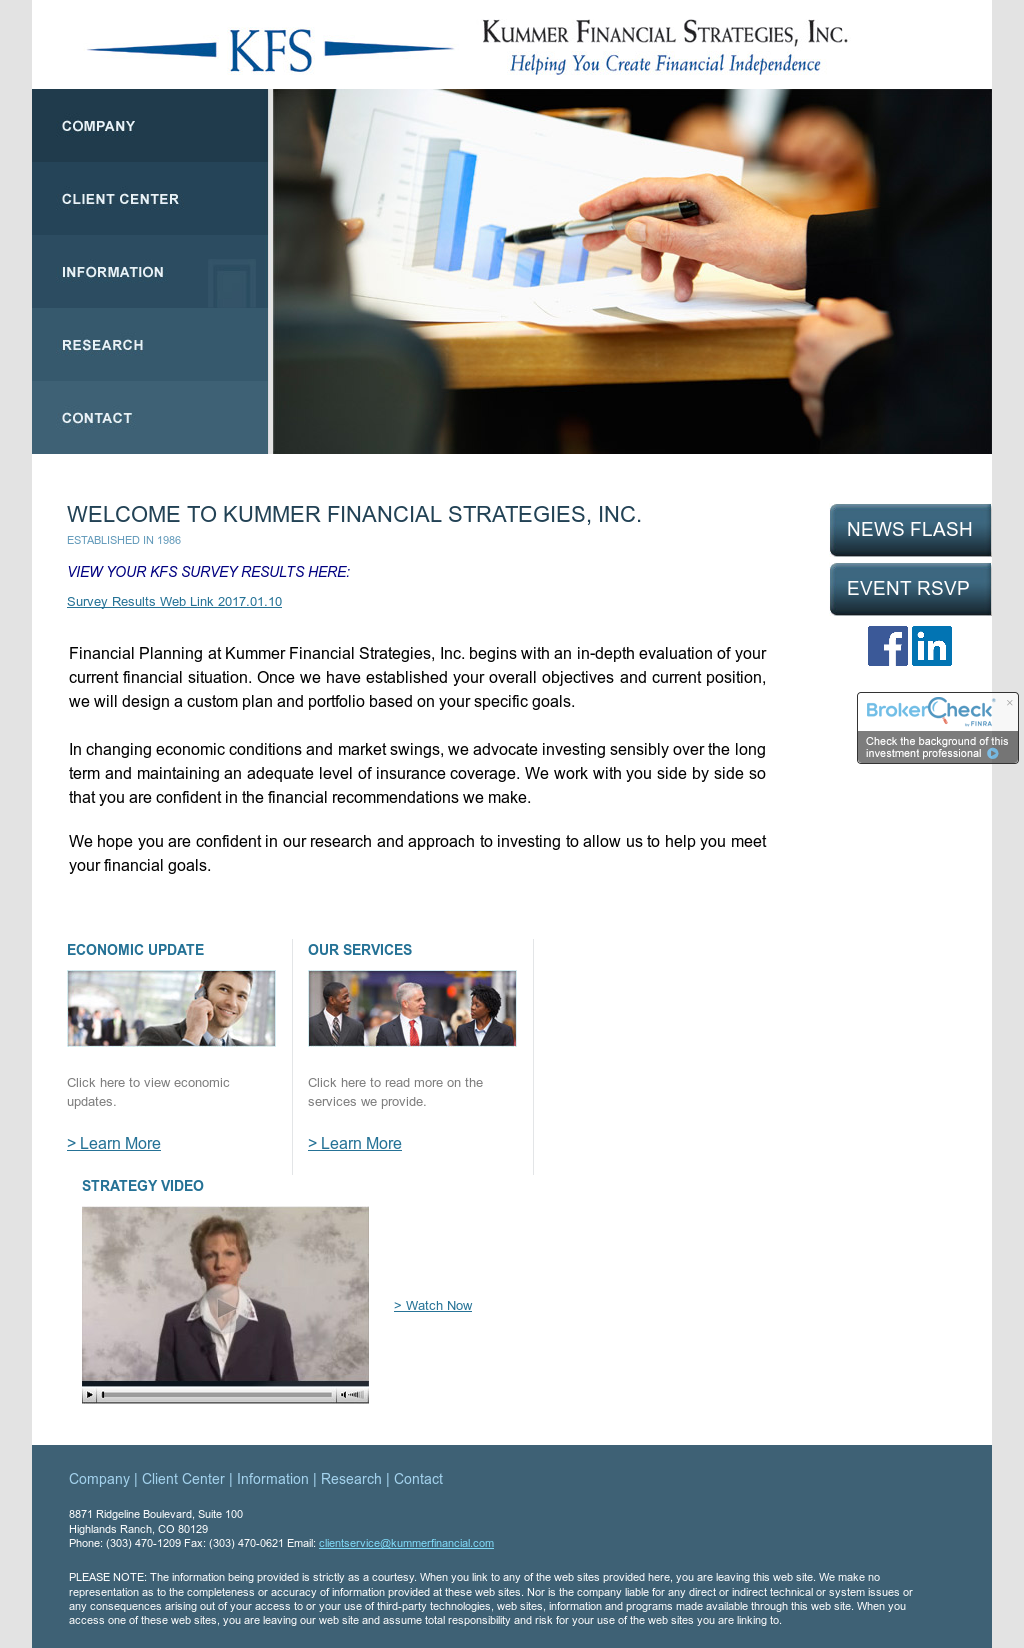 Kummer Financial Strategies Competitors, Revenue and